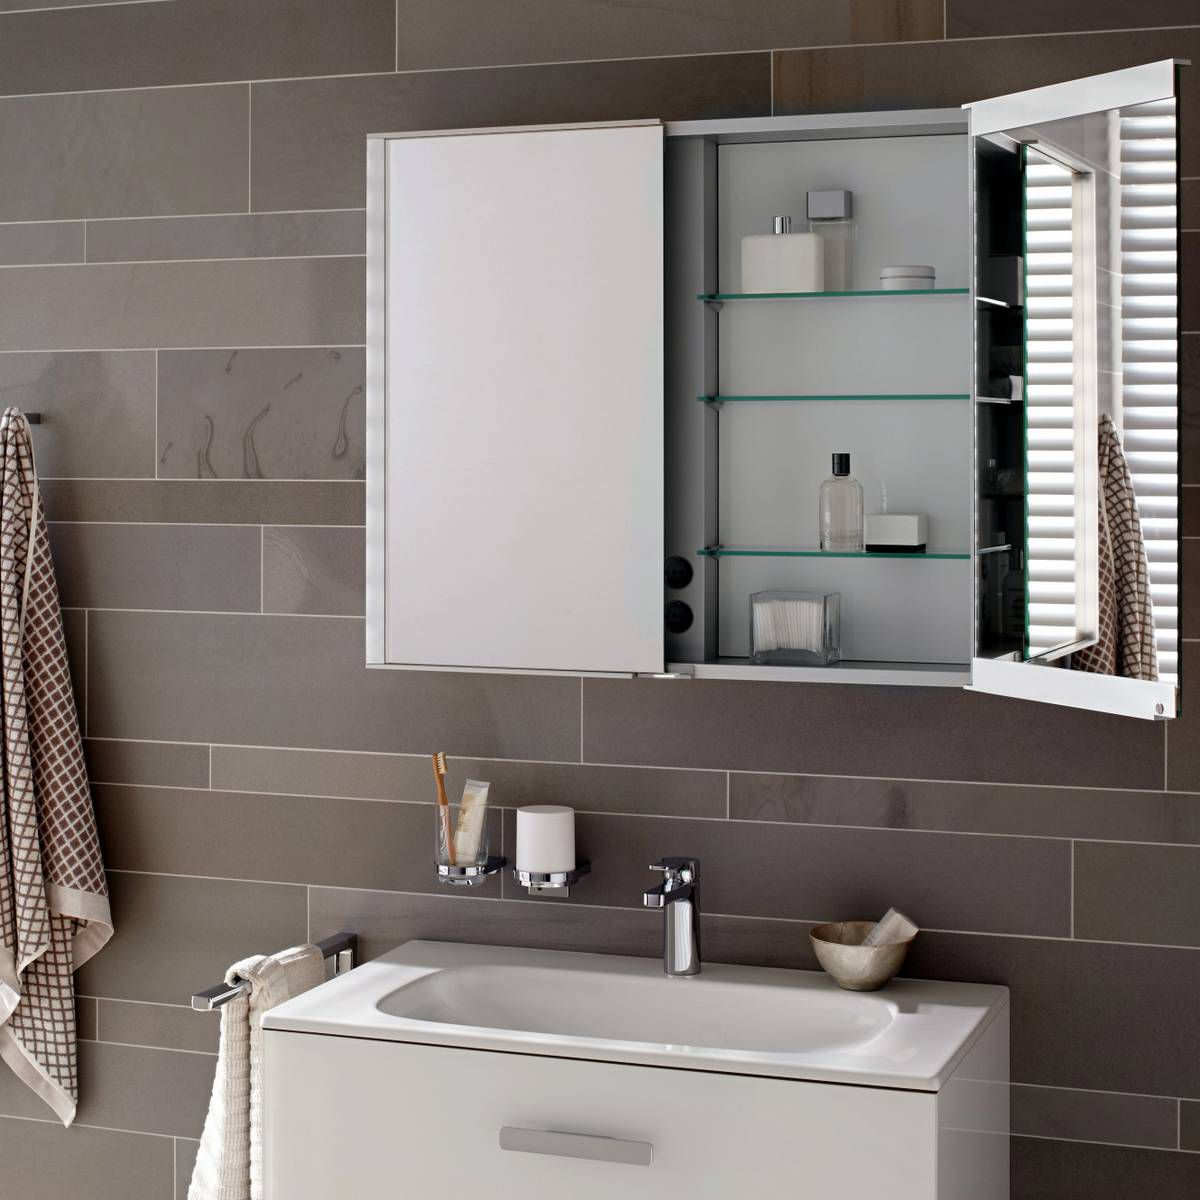 keuco royal match mirror cabinet uk bathrooms. Black Bedroom Furniture Sets. Home Design Ideas